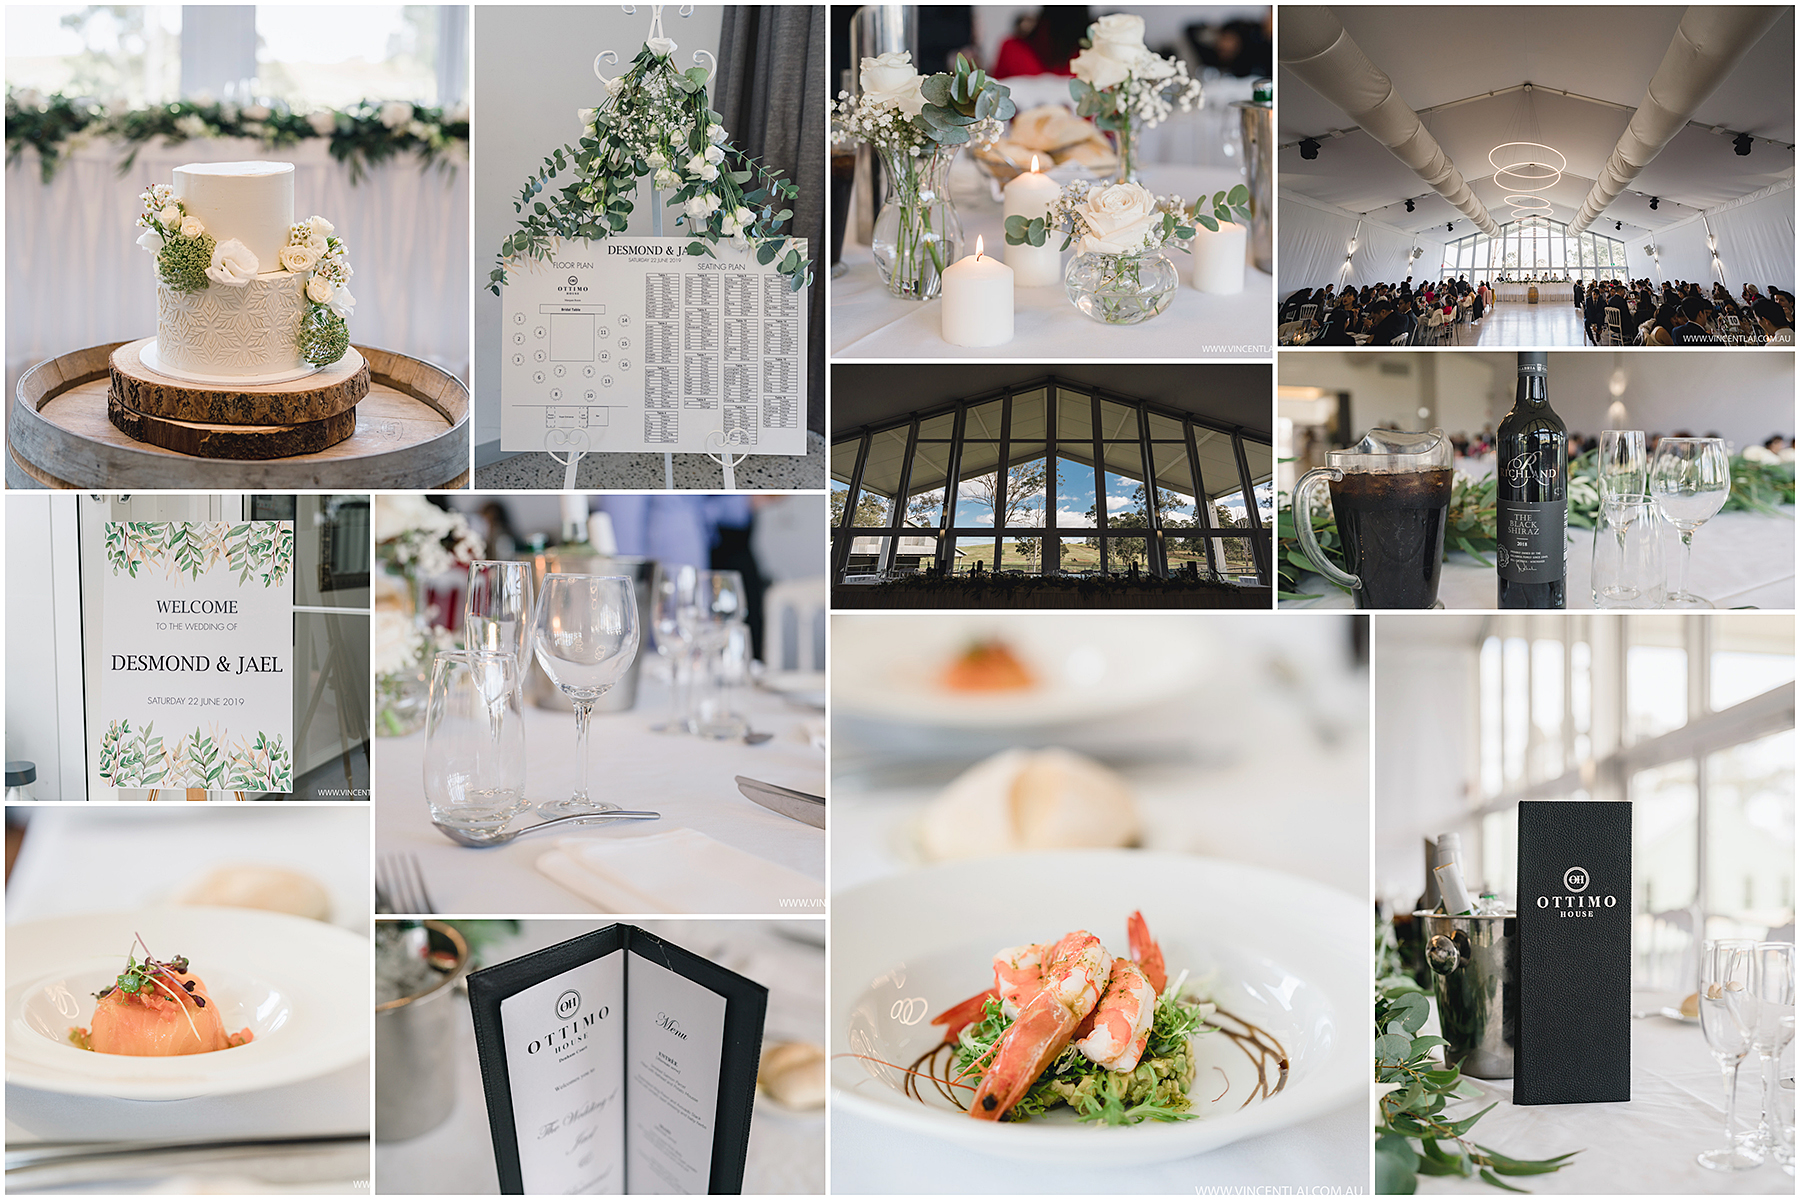 Wedding at Ottimo House Denham Court Marquee